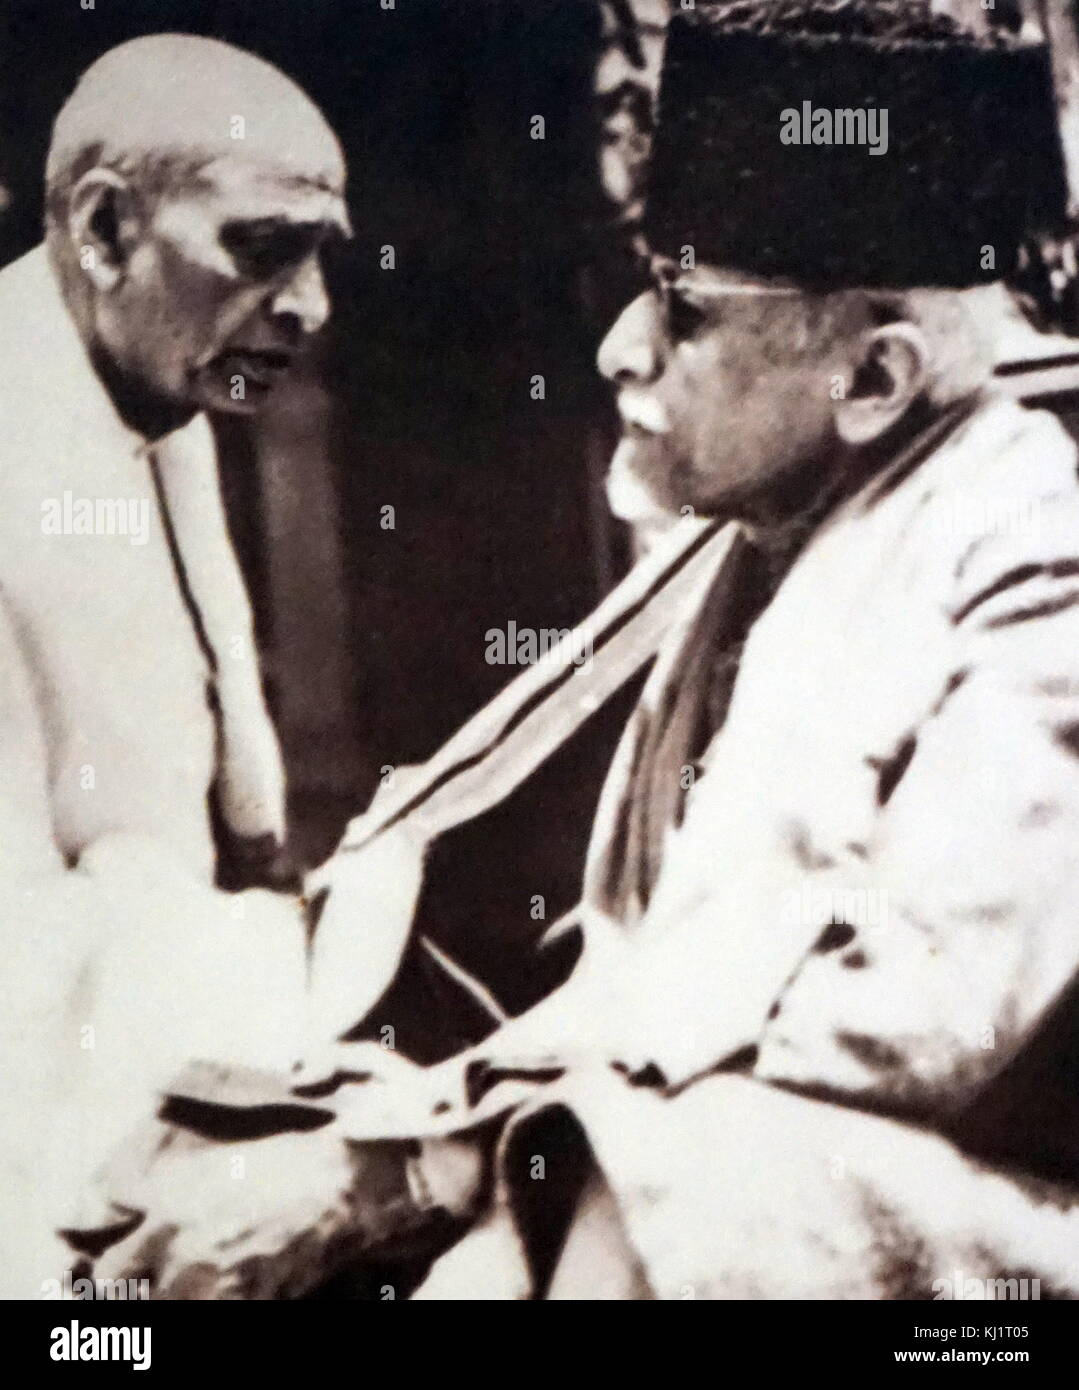 Sardar Patel, a prominent leader of the Indian independence movement with Maulana Azad, the senior Muslim leader - Stock Image